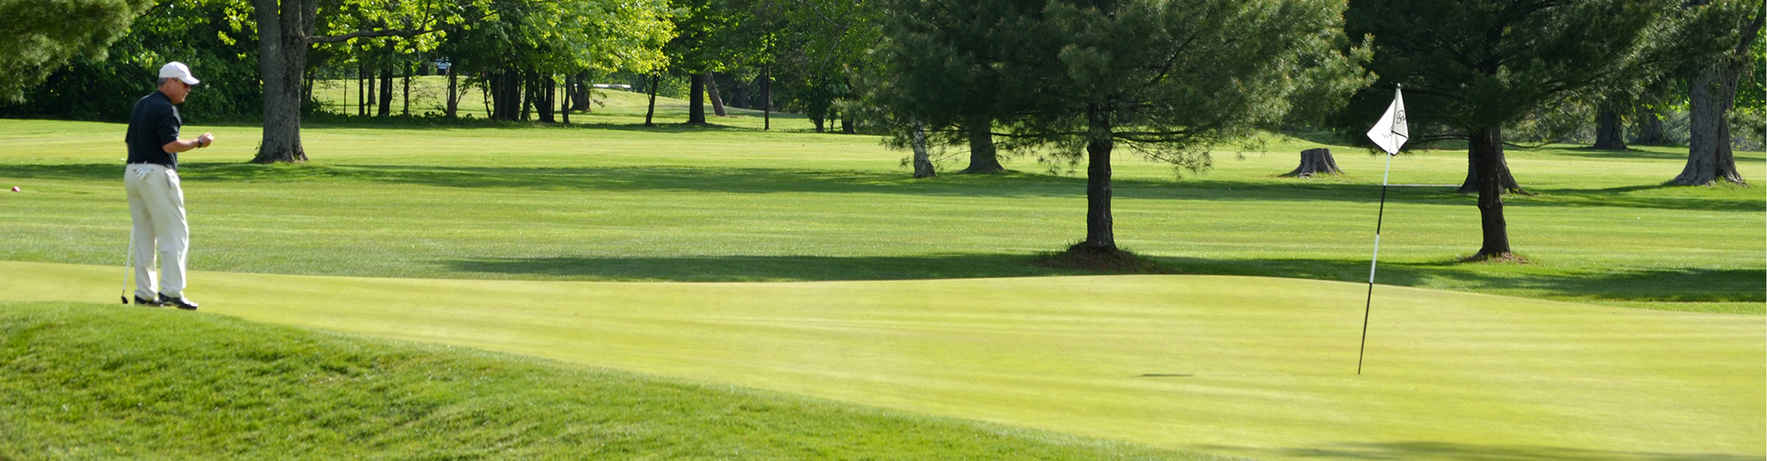 26th Annual SPIN Golf Tournament image